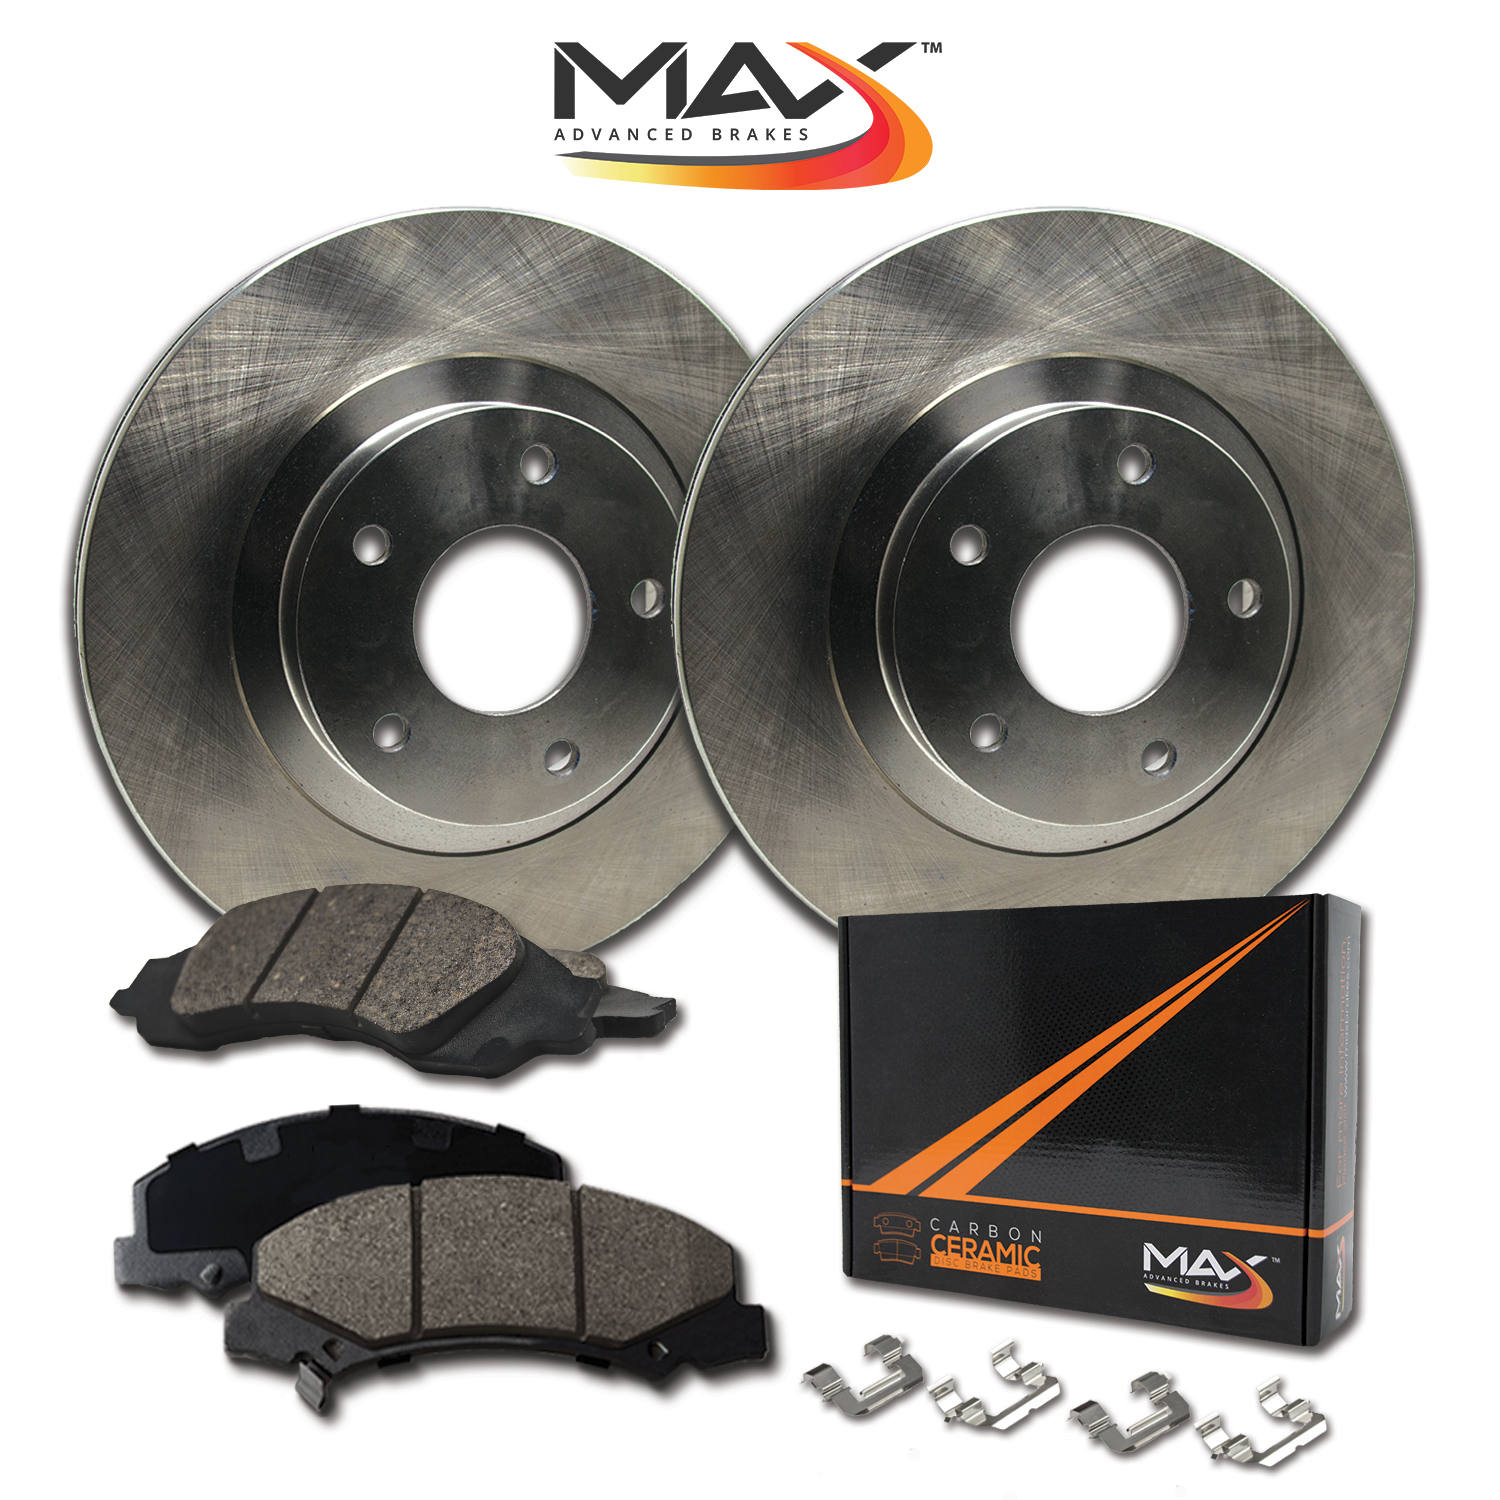 REAR-KIT-OE-Replacement-Brake-Rotors-with-Ceramic-Pads-amp-Hardware-Kit